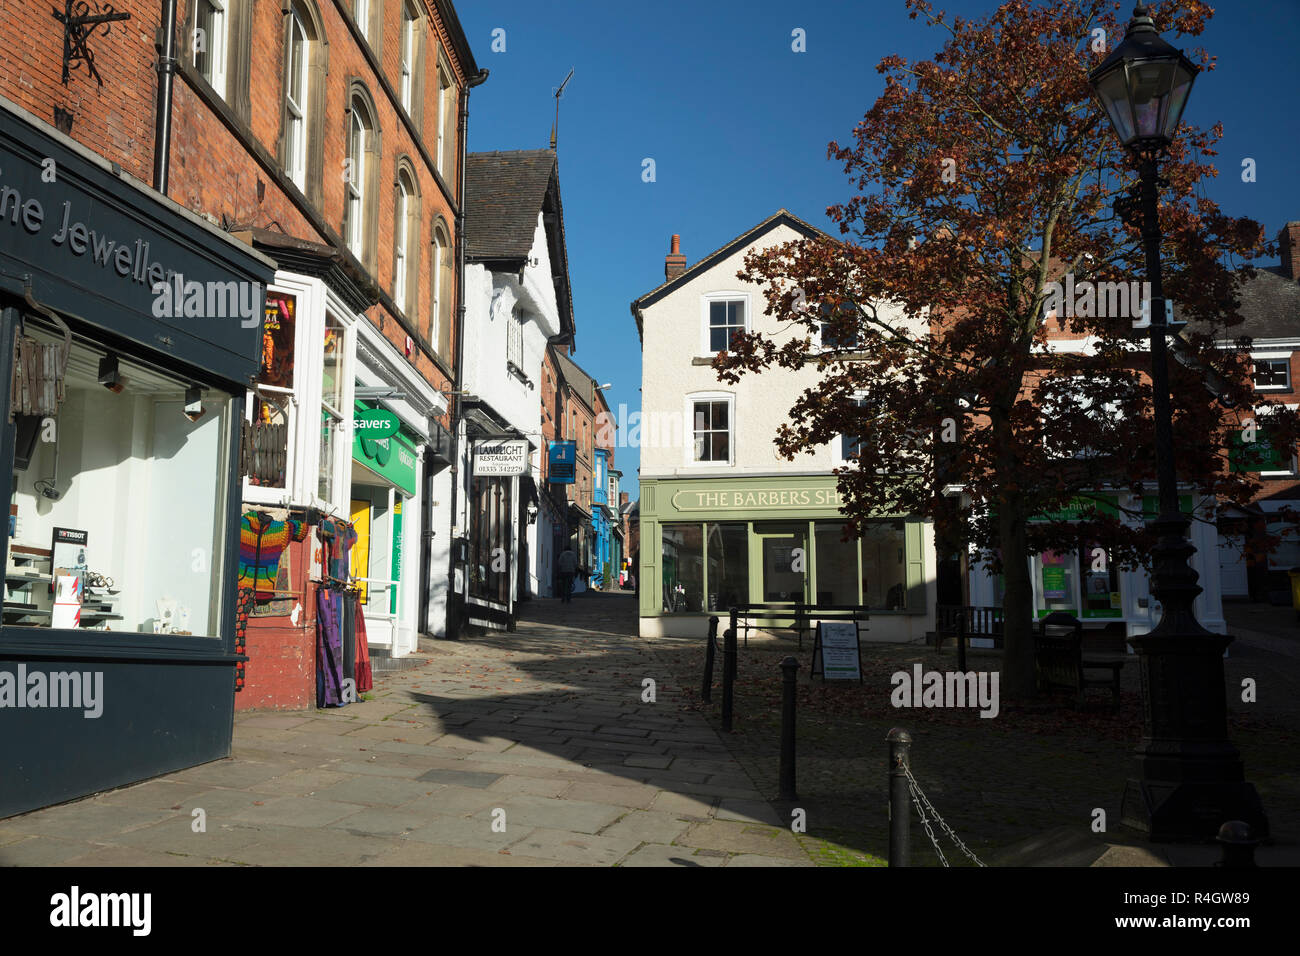 Ashbourne, Derbyshire, UK: October 2018: Victoria Square - Stock Image